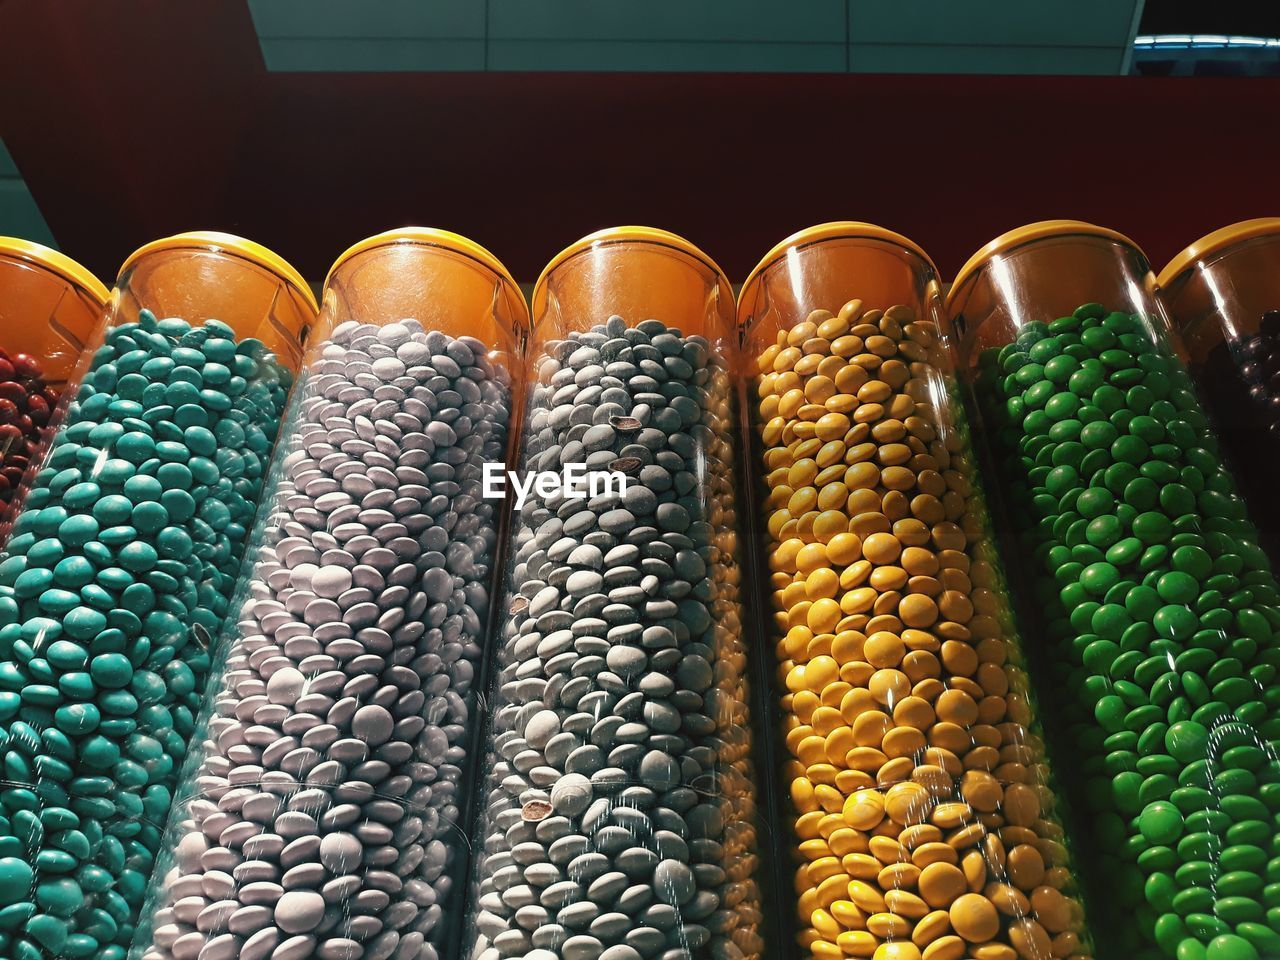 food and drink, food, still life, no people, large group of objects, indoors, side by side, freshness, vegetable, container, abundance, green color, multi colored, close-up, order, variation, choice, in a row, arrangement, for sale, retail display, sweetcorn, temptation